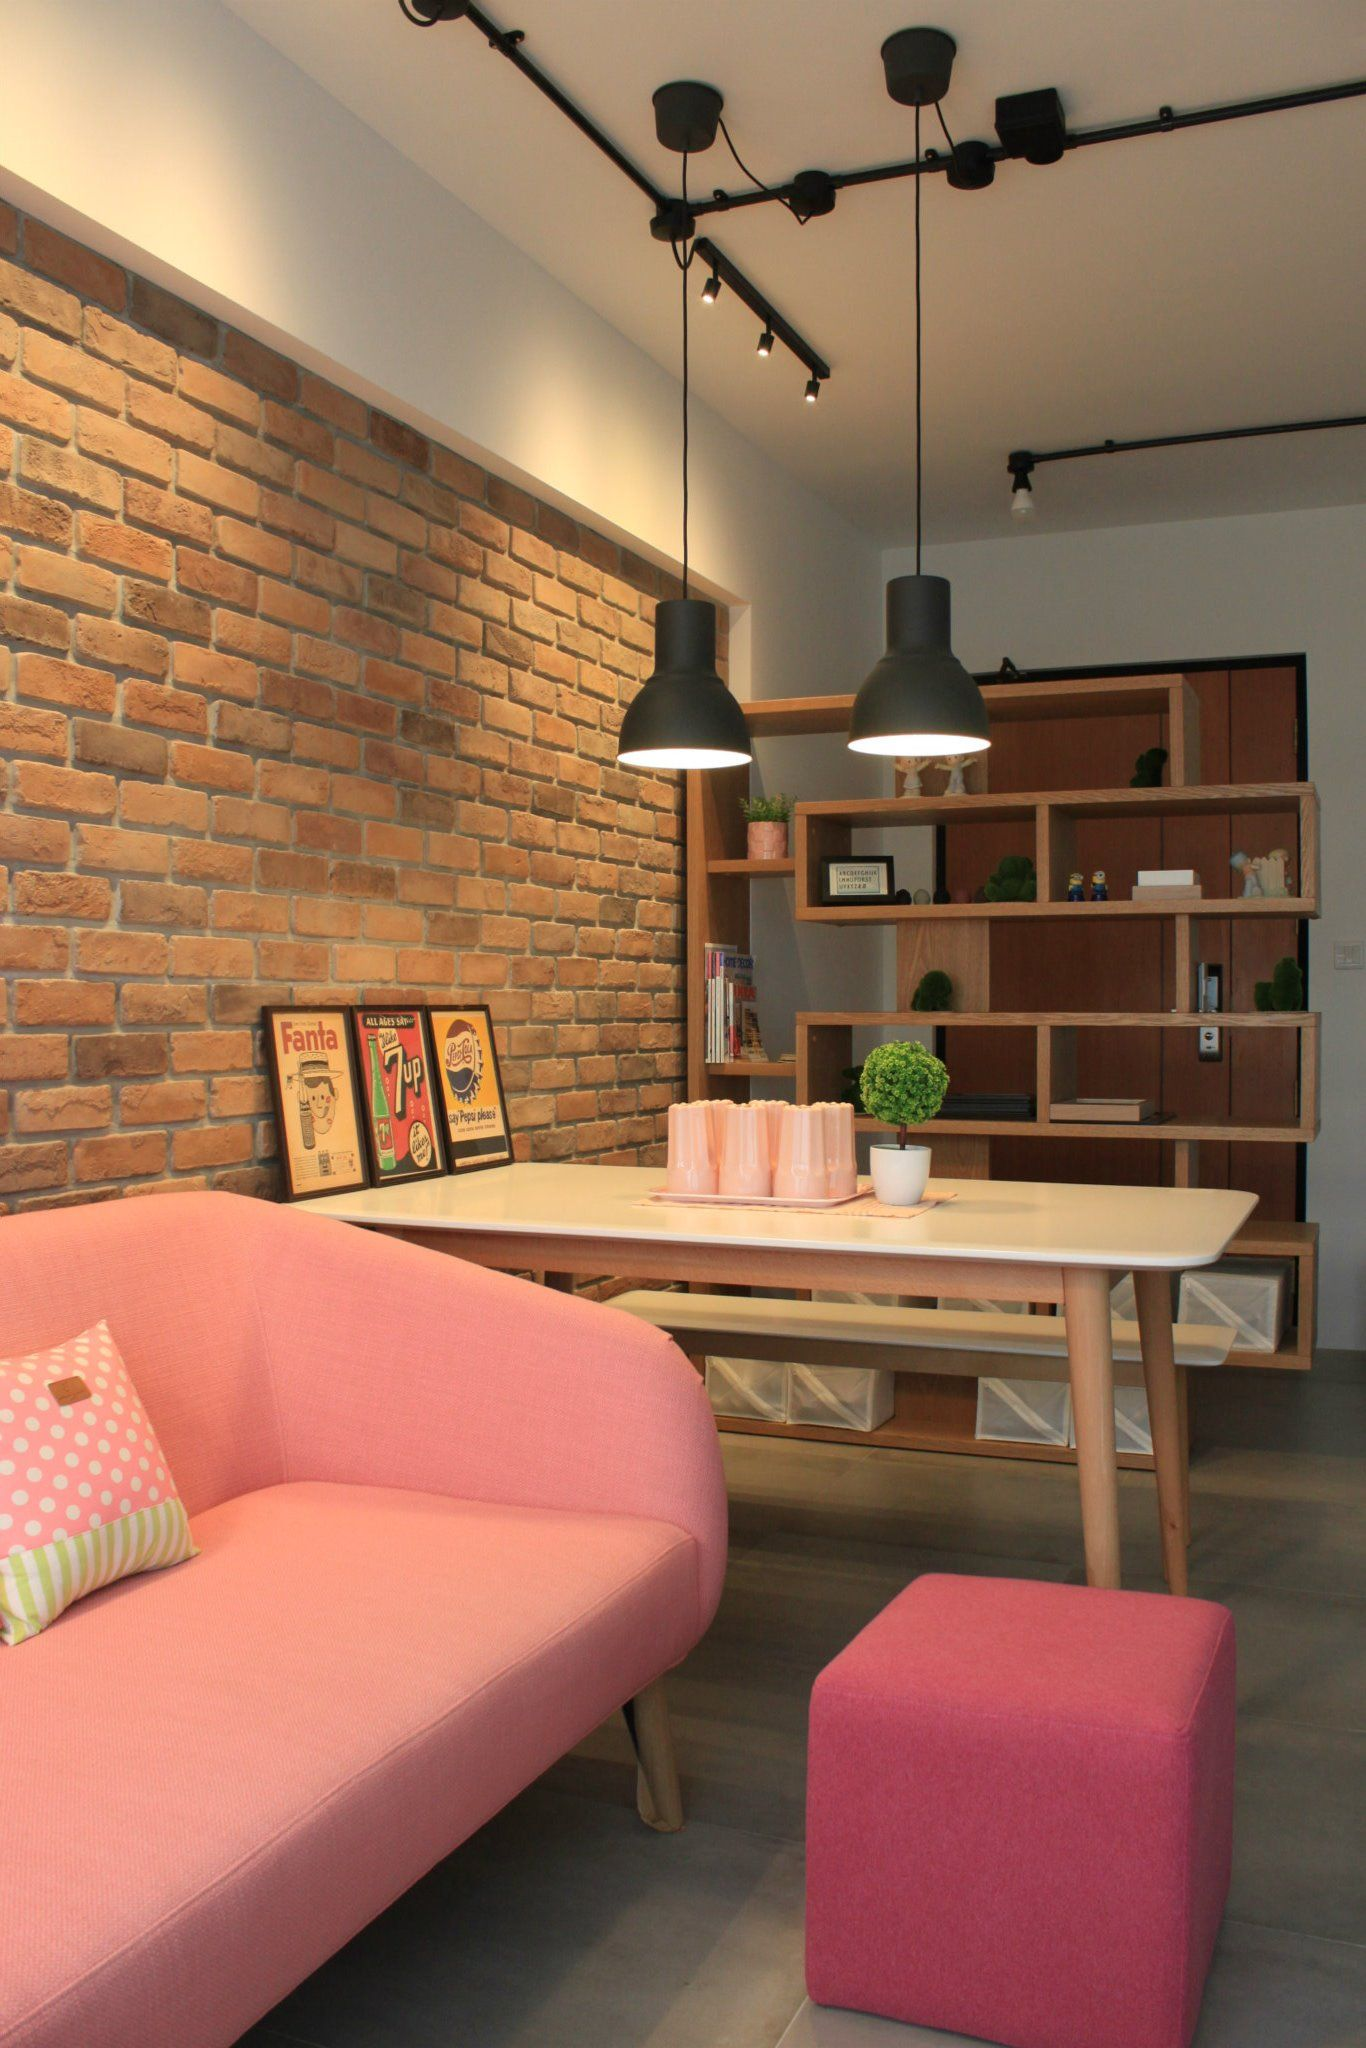 4 room bto living room pink is new eg apartment for 4 room bto interior design ideas